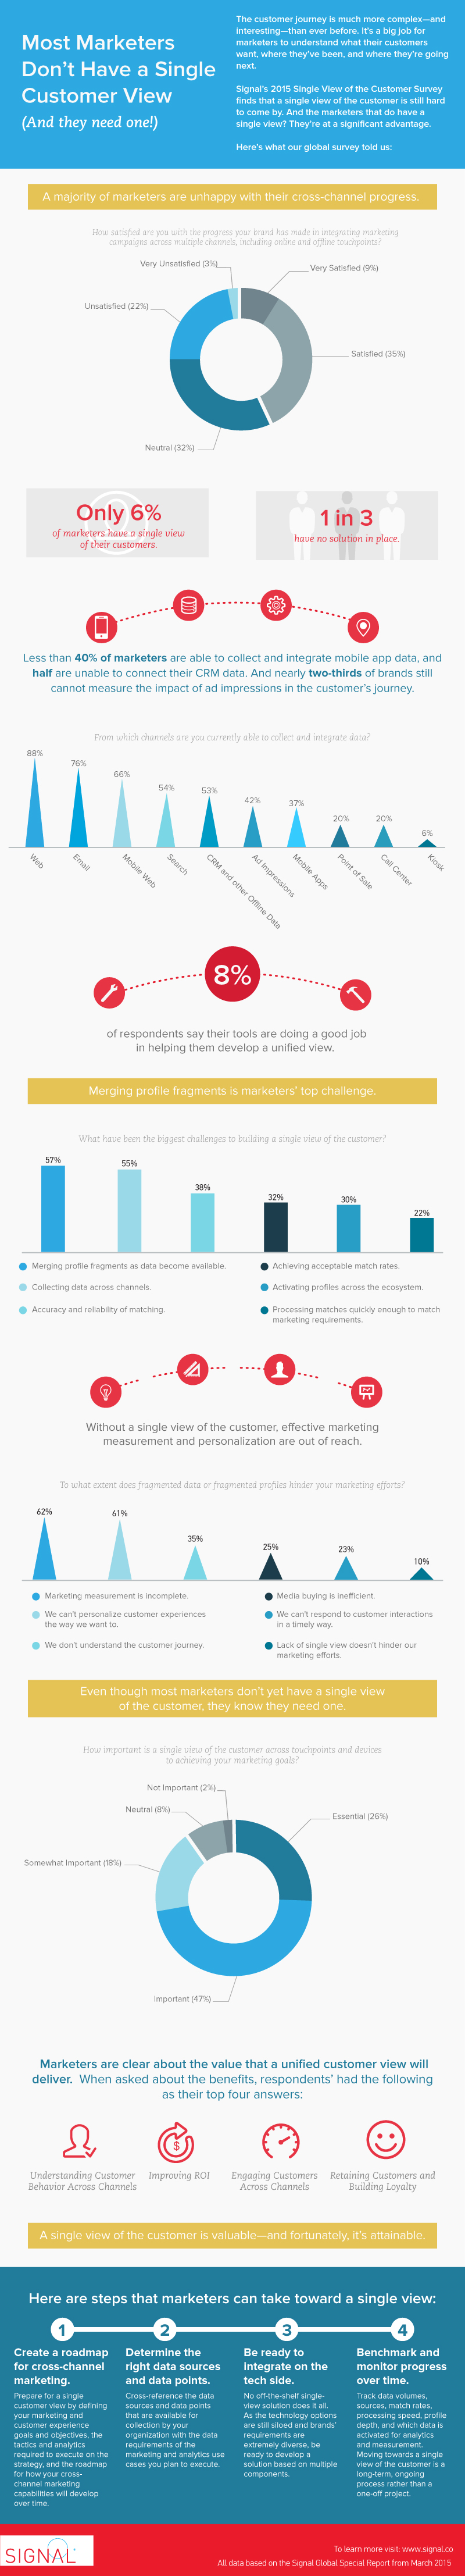 Study Reveals Cross Channel Marketing Challenges